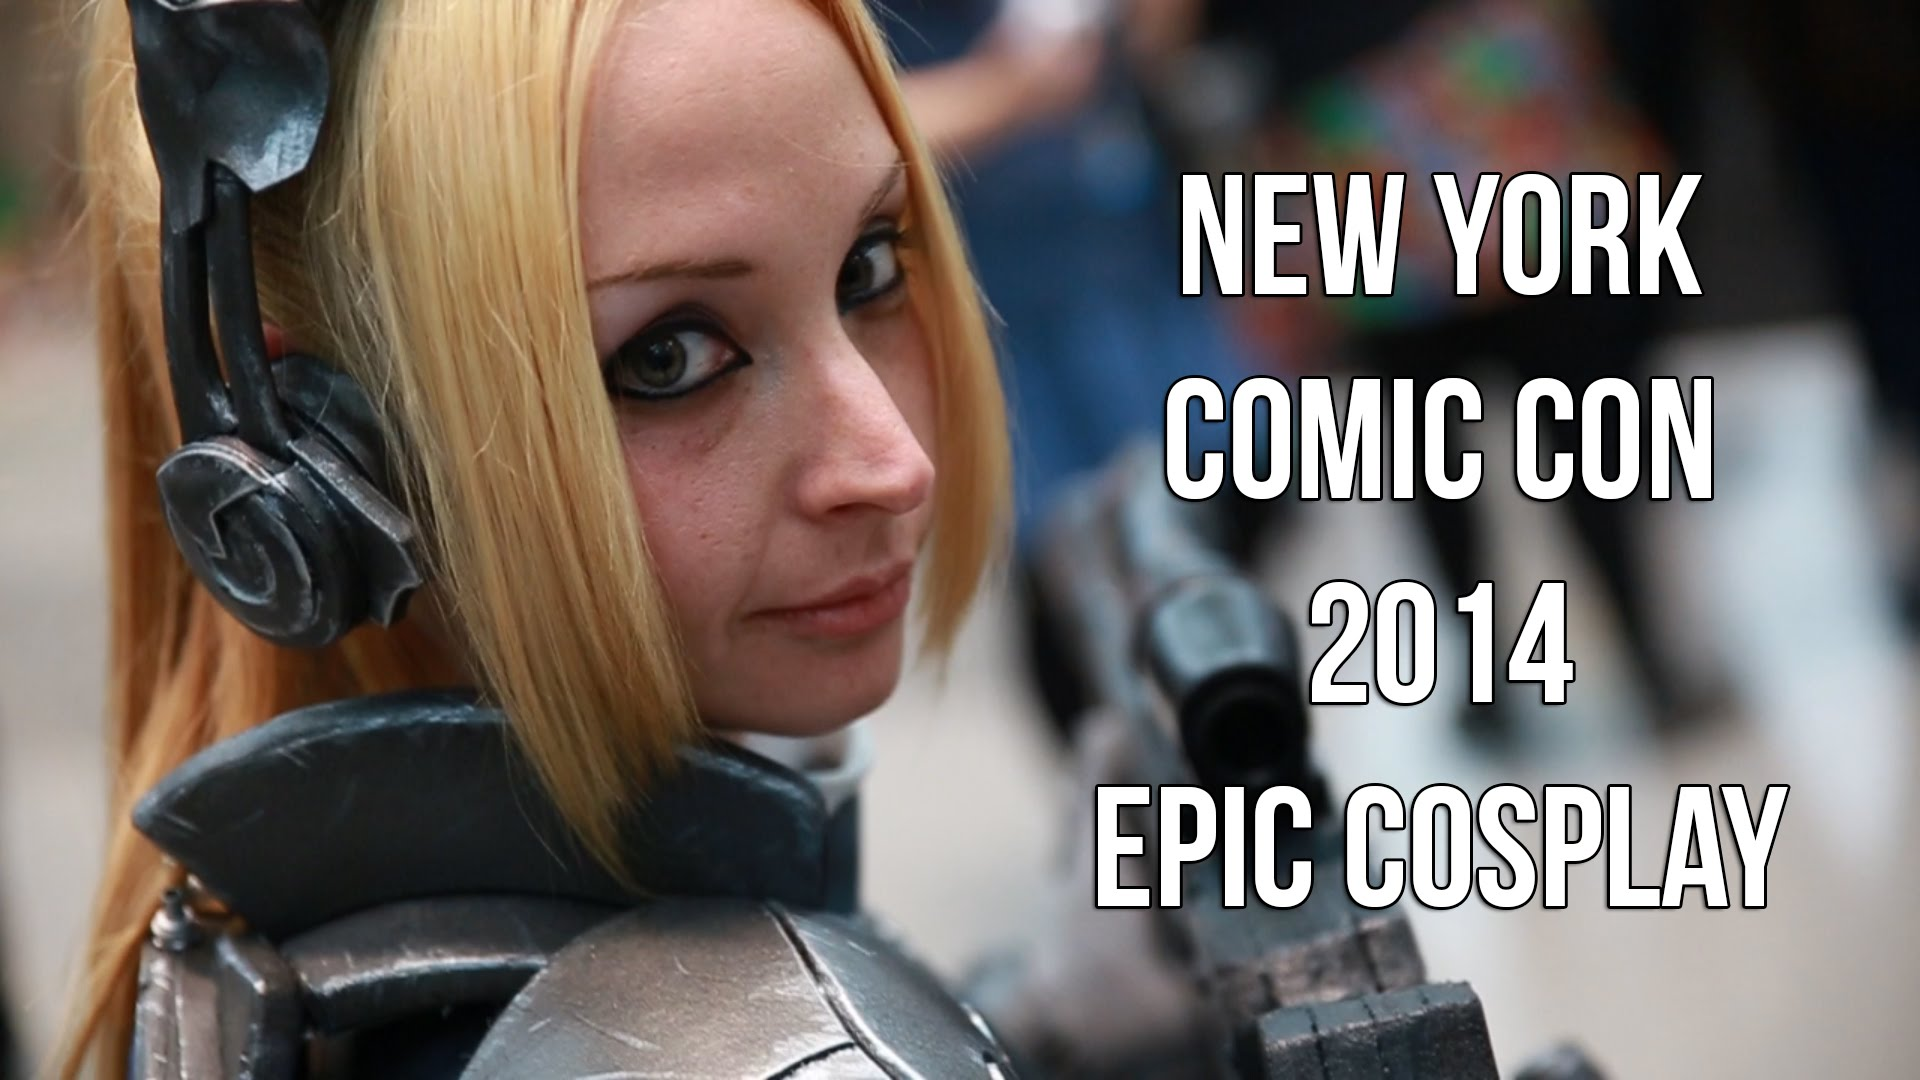 maxresdefault2270SOVJ Ein Cosplay Musik Video von der New York Comic Con 2014